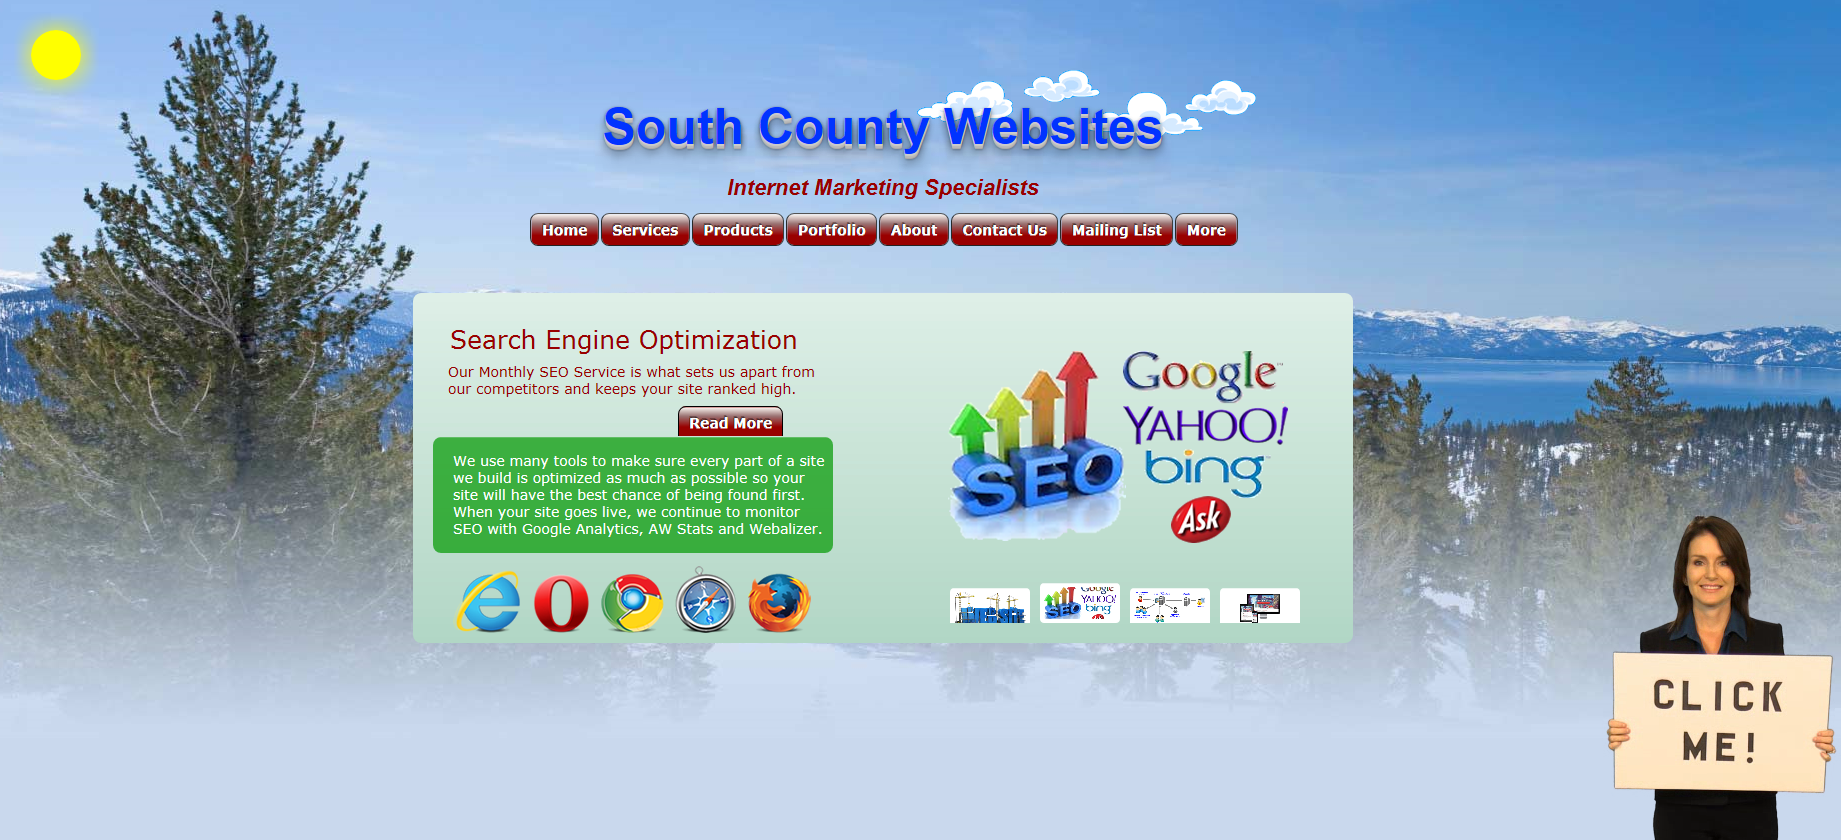 South County Websites Home Slider